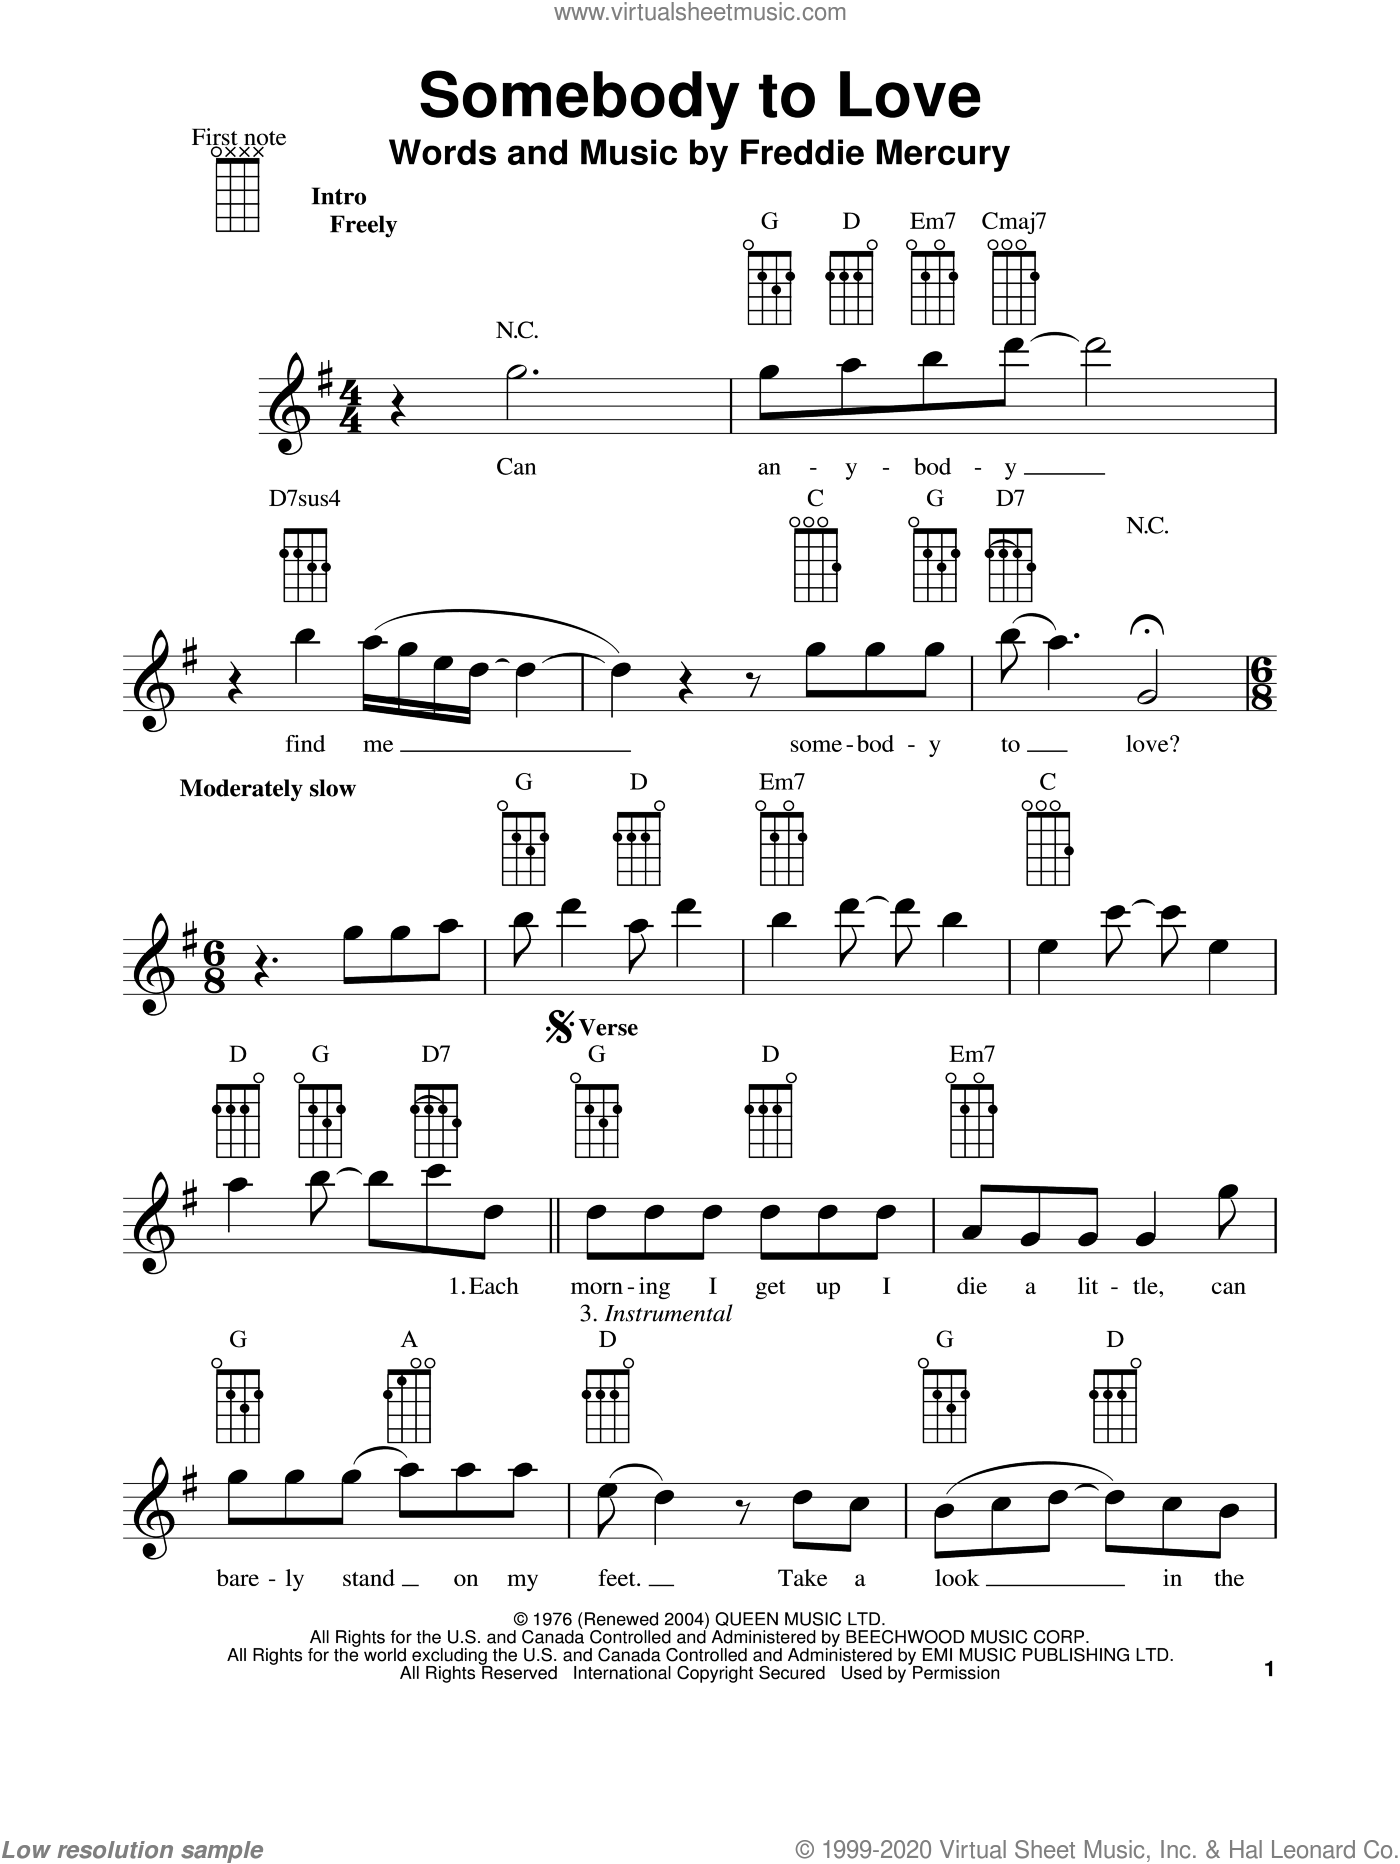 Somebody To Love sheet music for ukulele by Queen, Freddie Mercury and Glee Cast, intermediate skill level